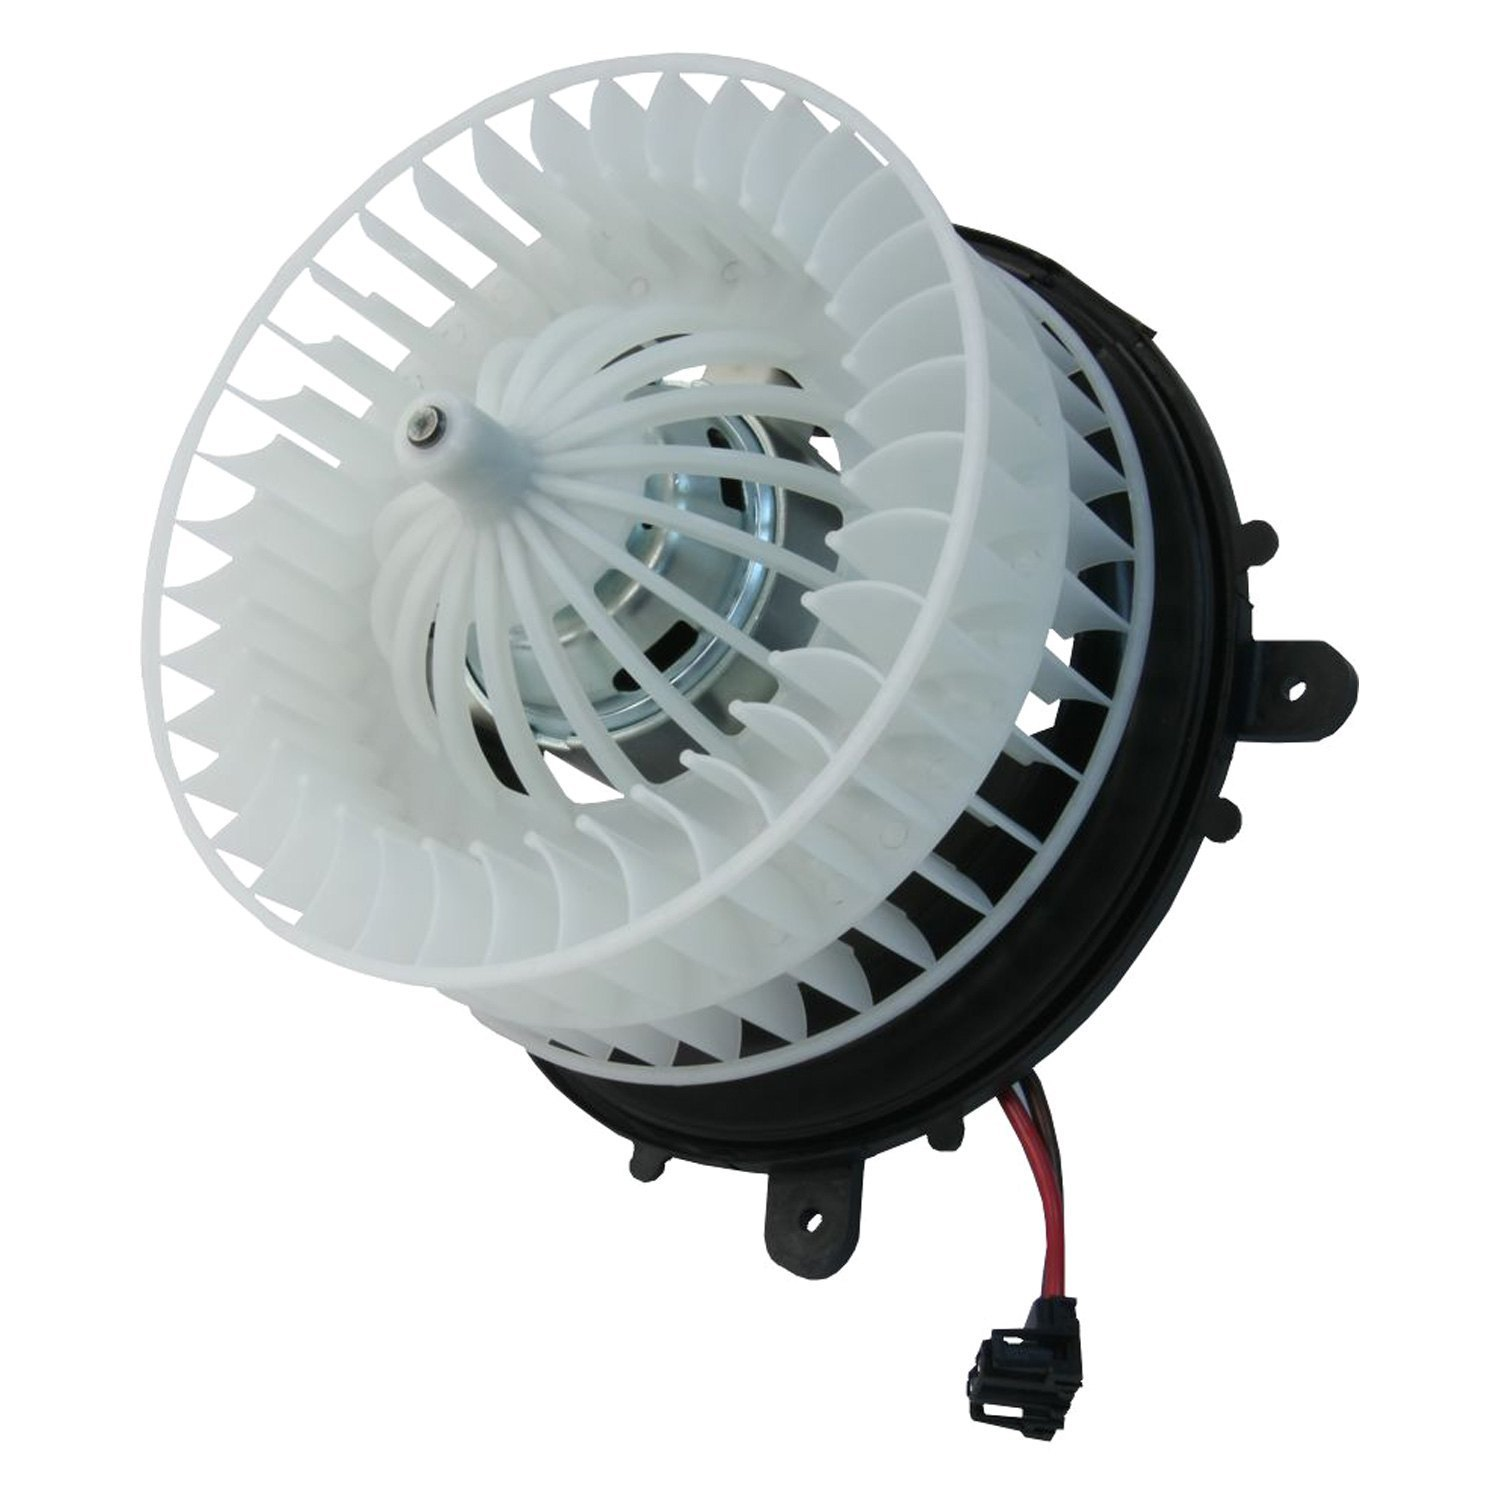 Mercedes benz cl65 amg 2005 2006 uro parts hvac blower for Furnace blower motor price